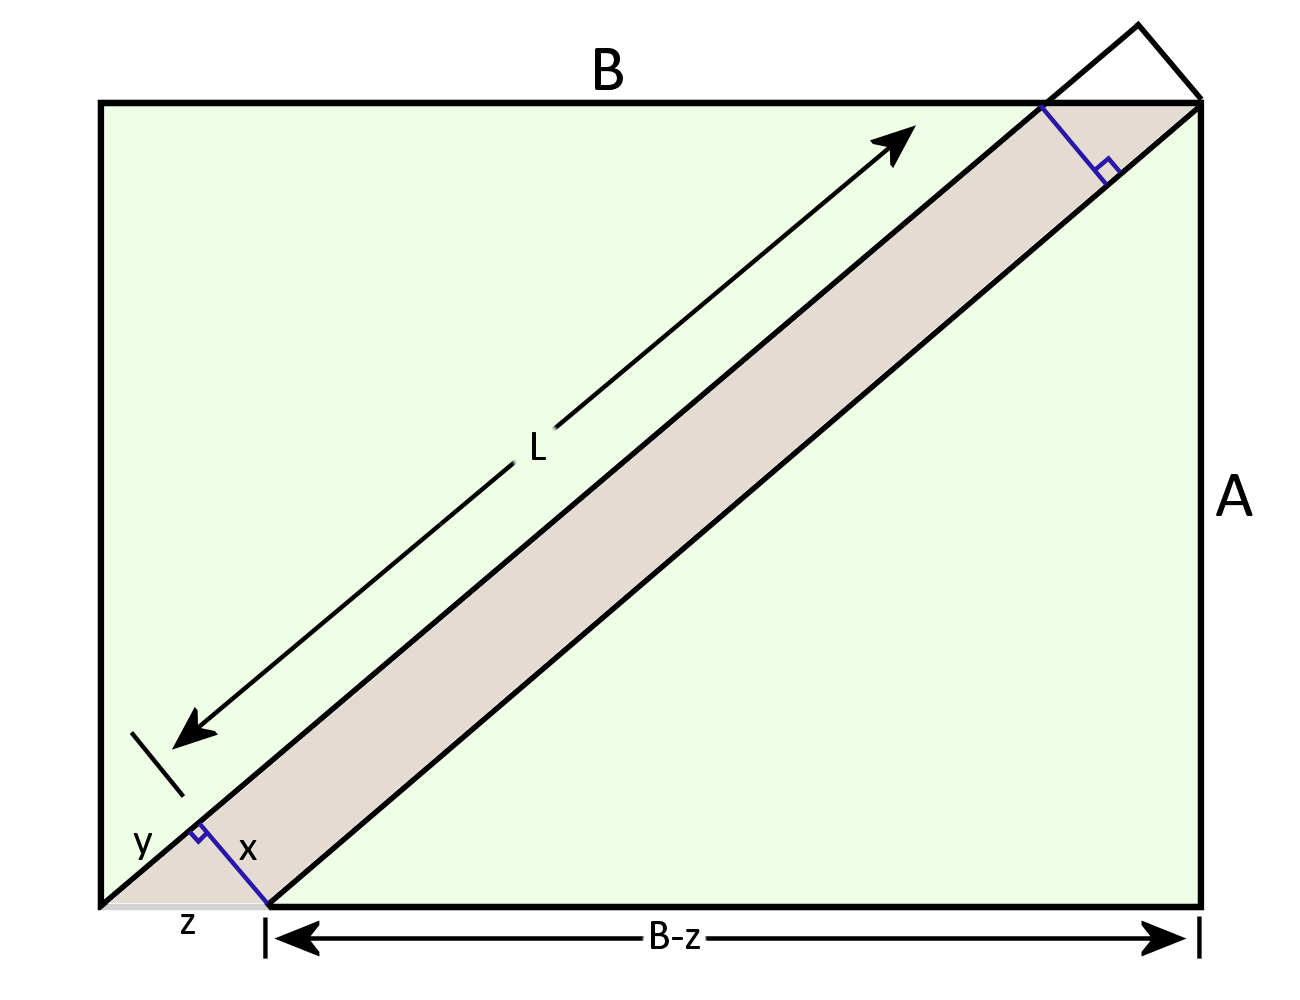 conceptual diagram moving the triangle in the bottom left to the top right so as to demonstrate why the area of the path is given by x(L+y)